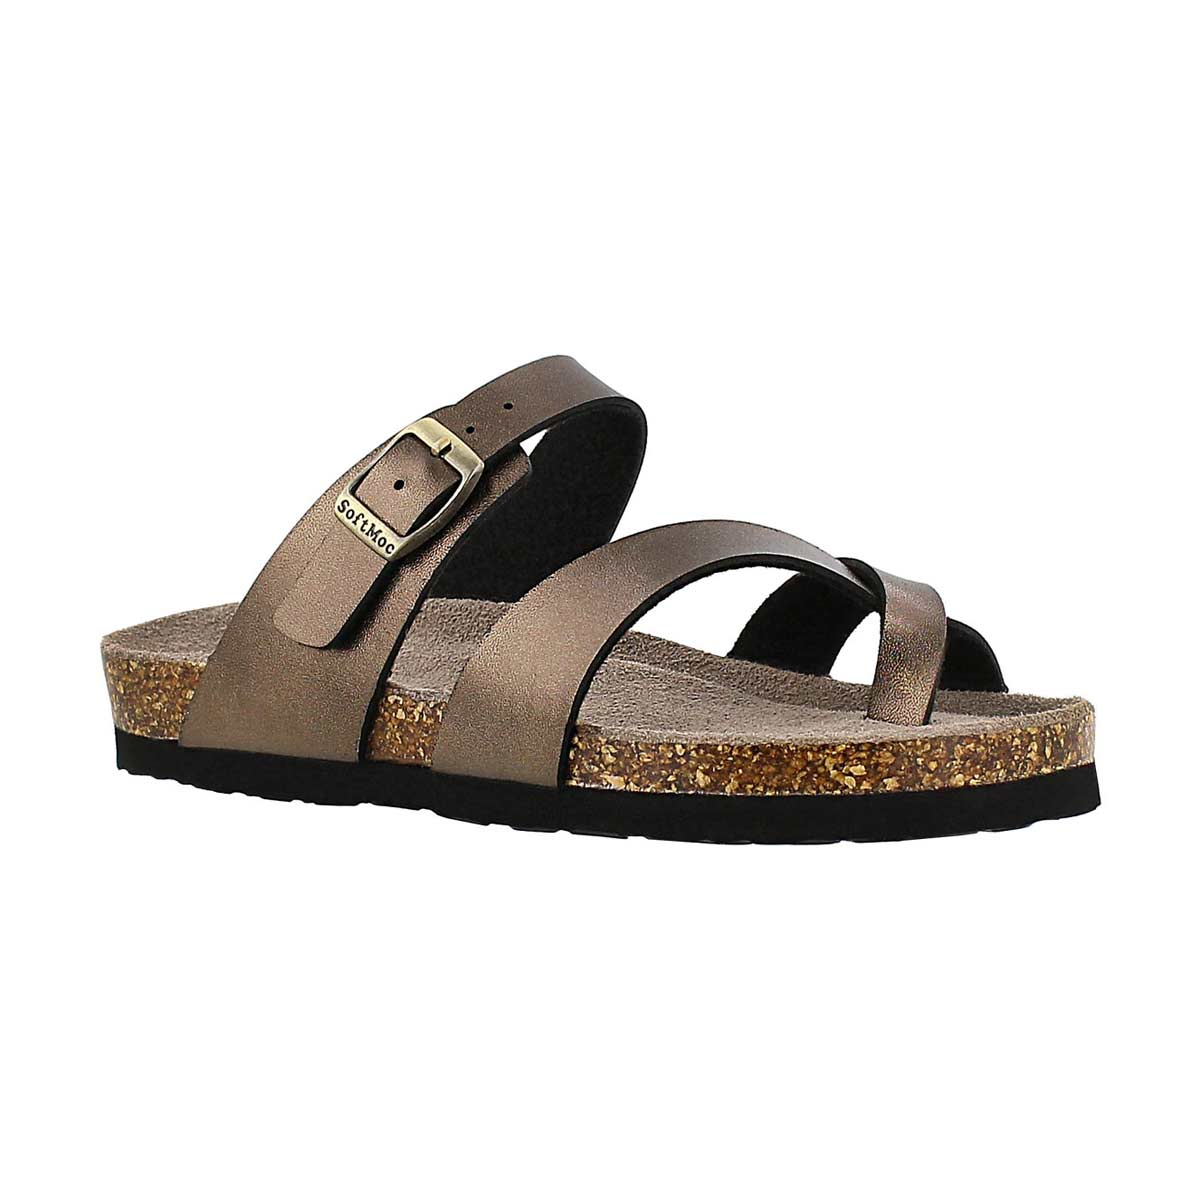 Sandale Alicia, brun or, filles